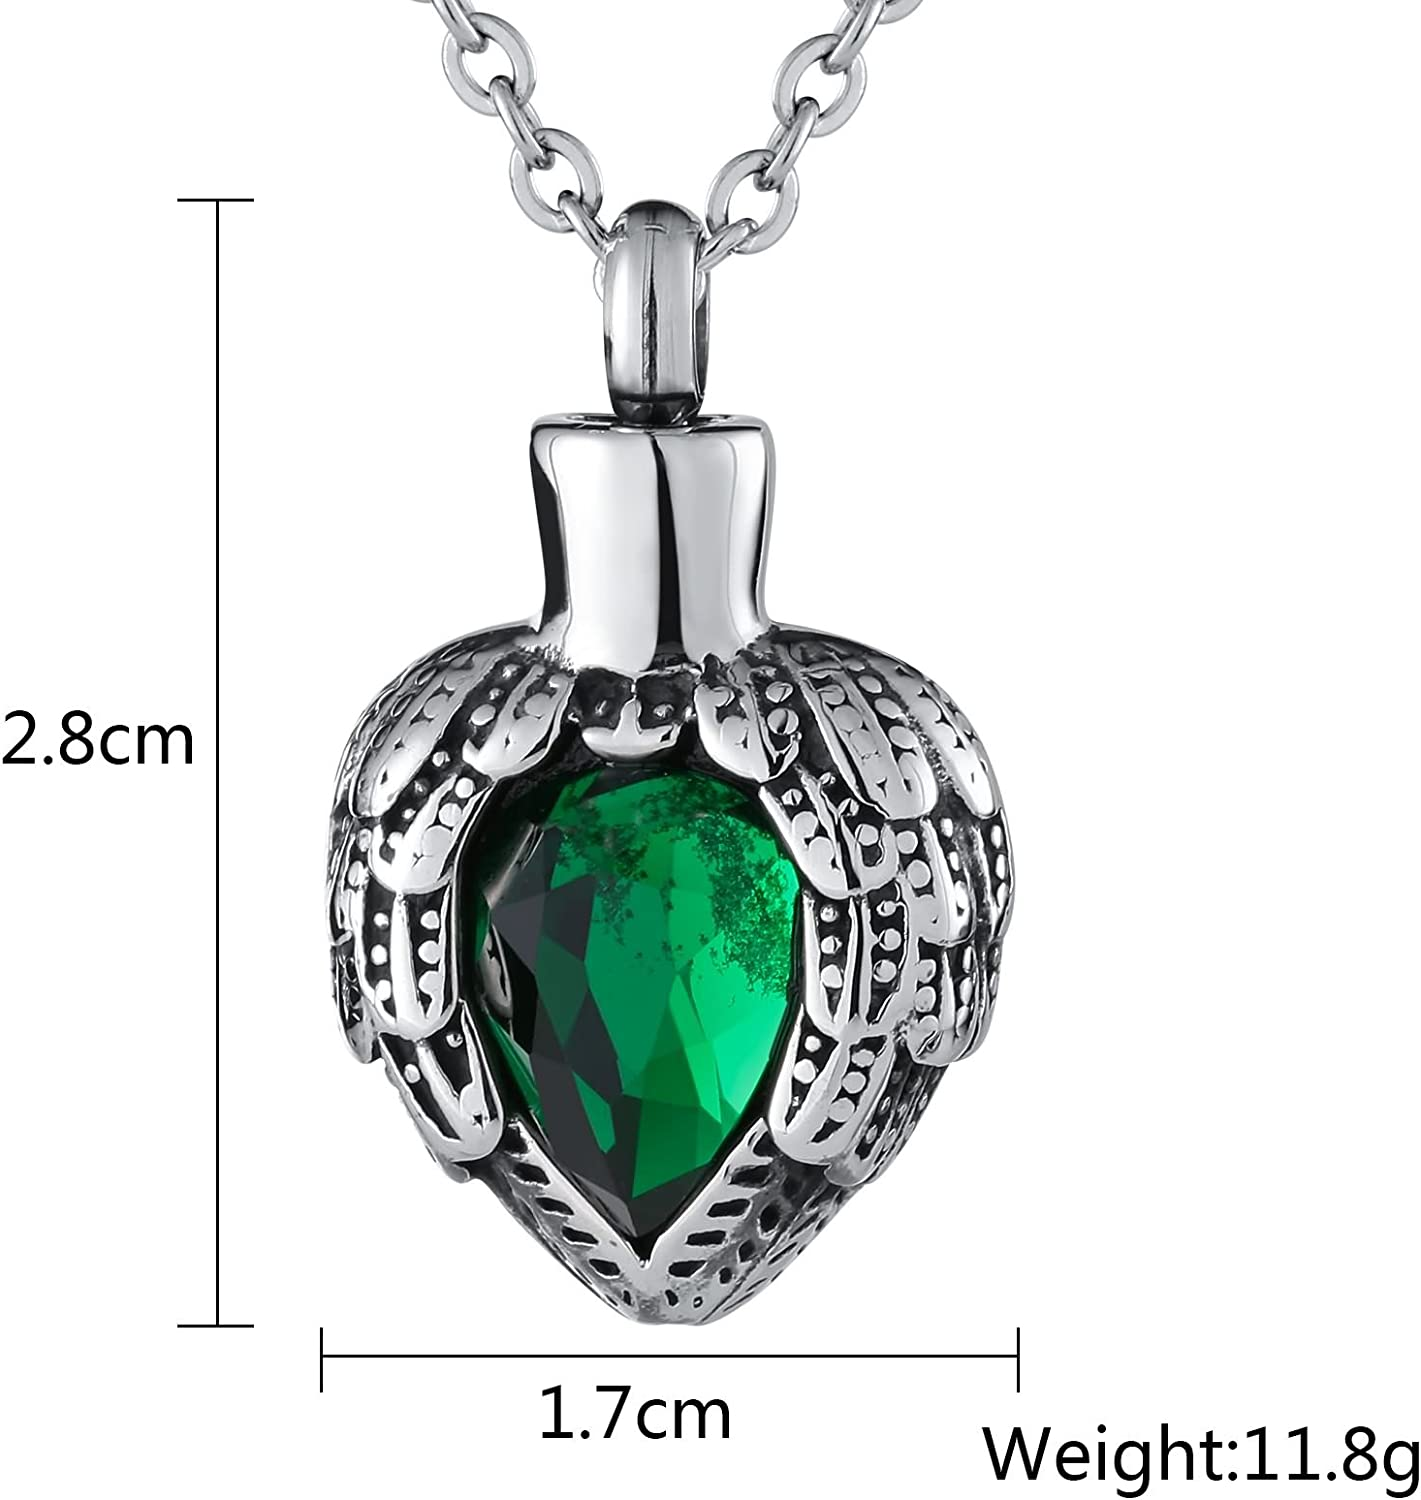 Epinki Stainless Steel Cross Heart Pendant Urn Necklace for Ashes Cremation Keepsake Necklace